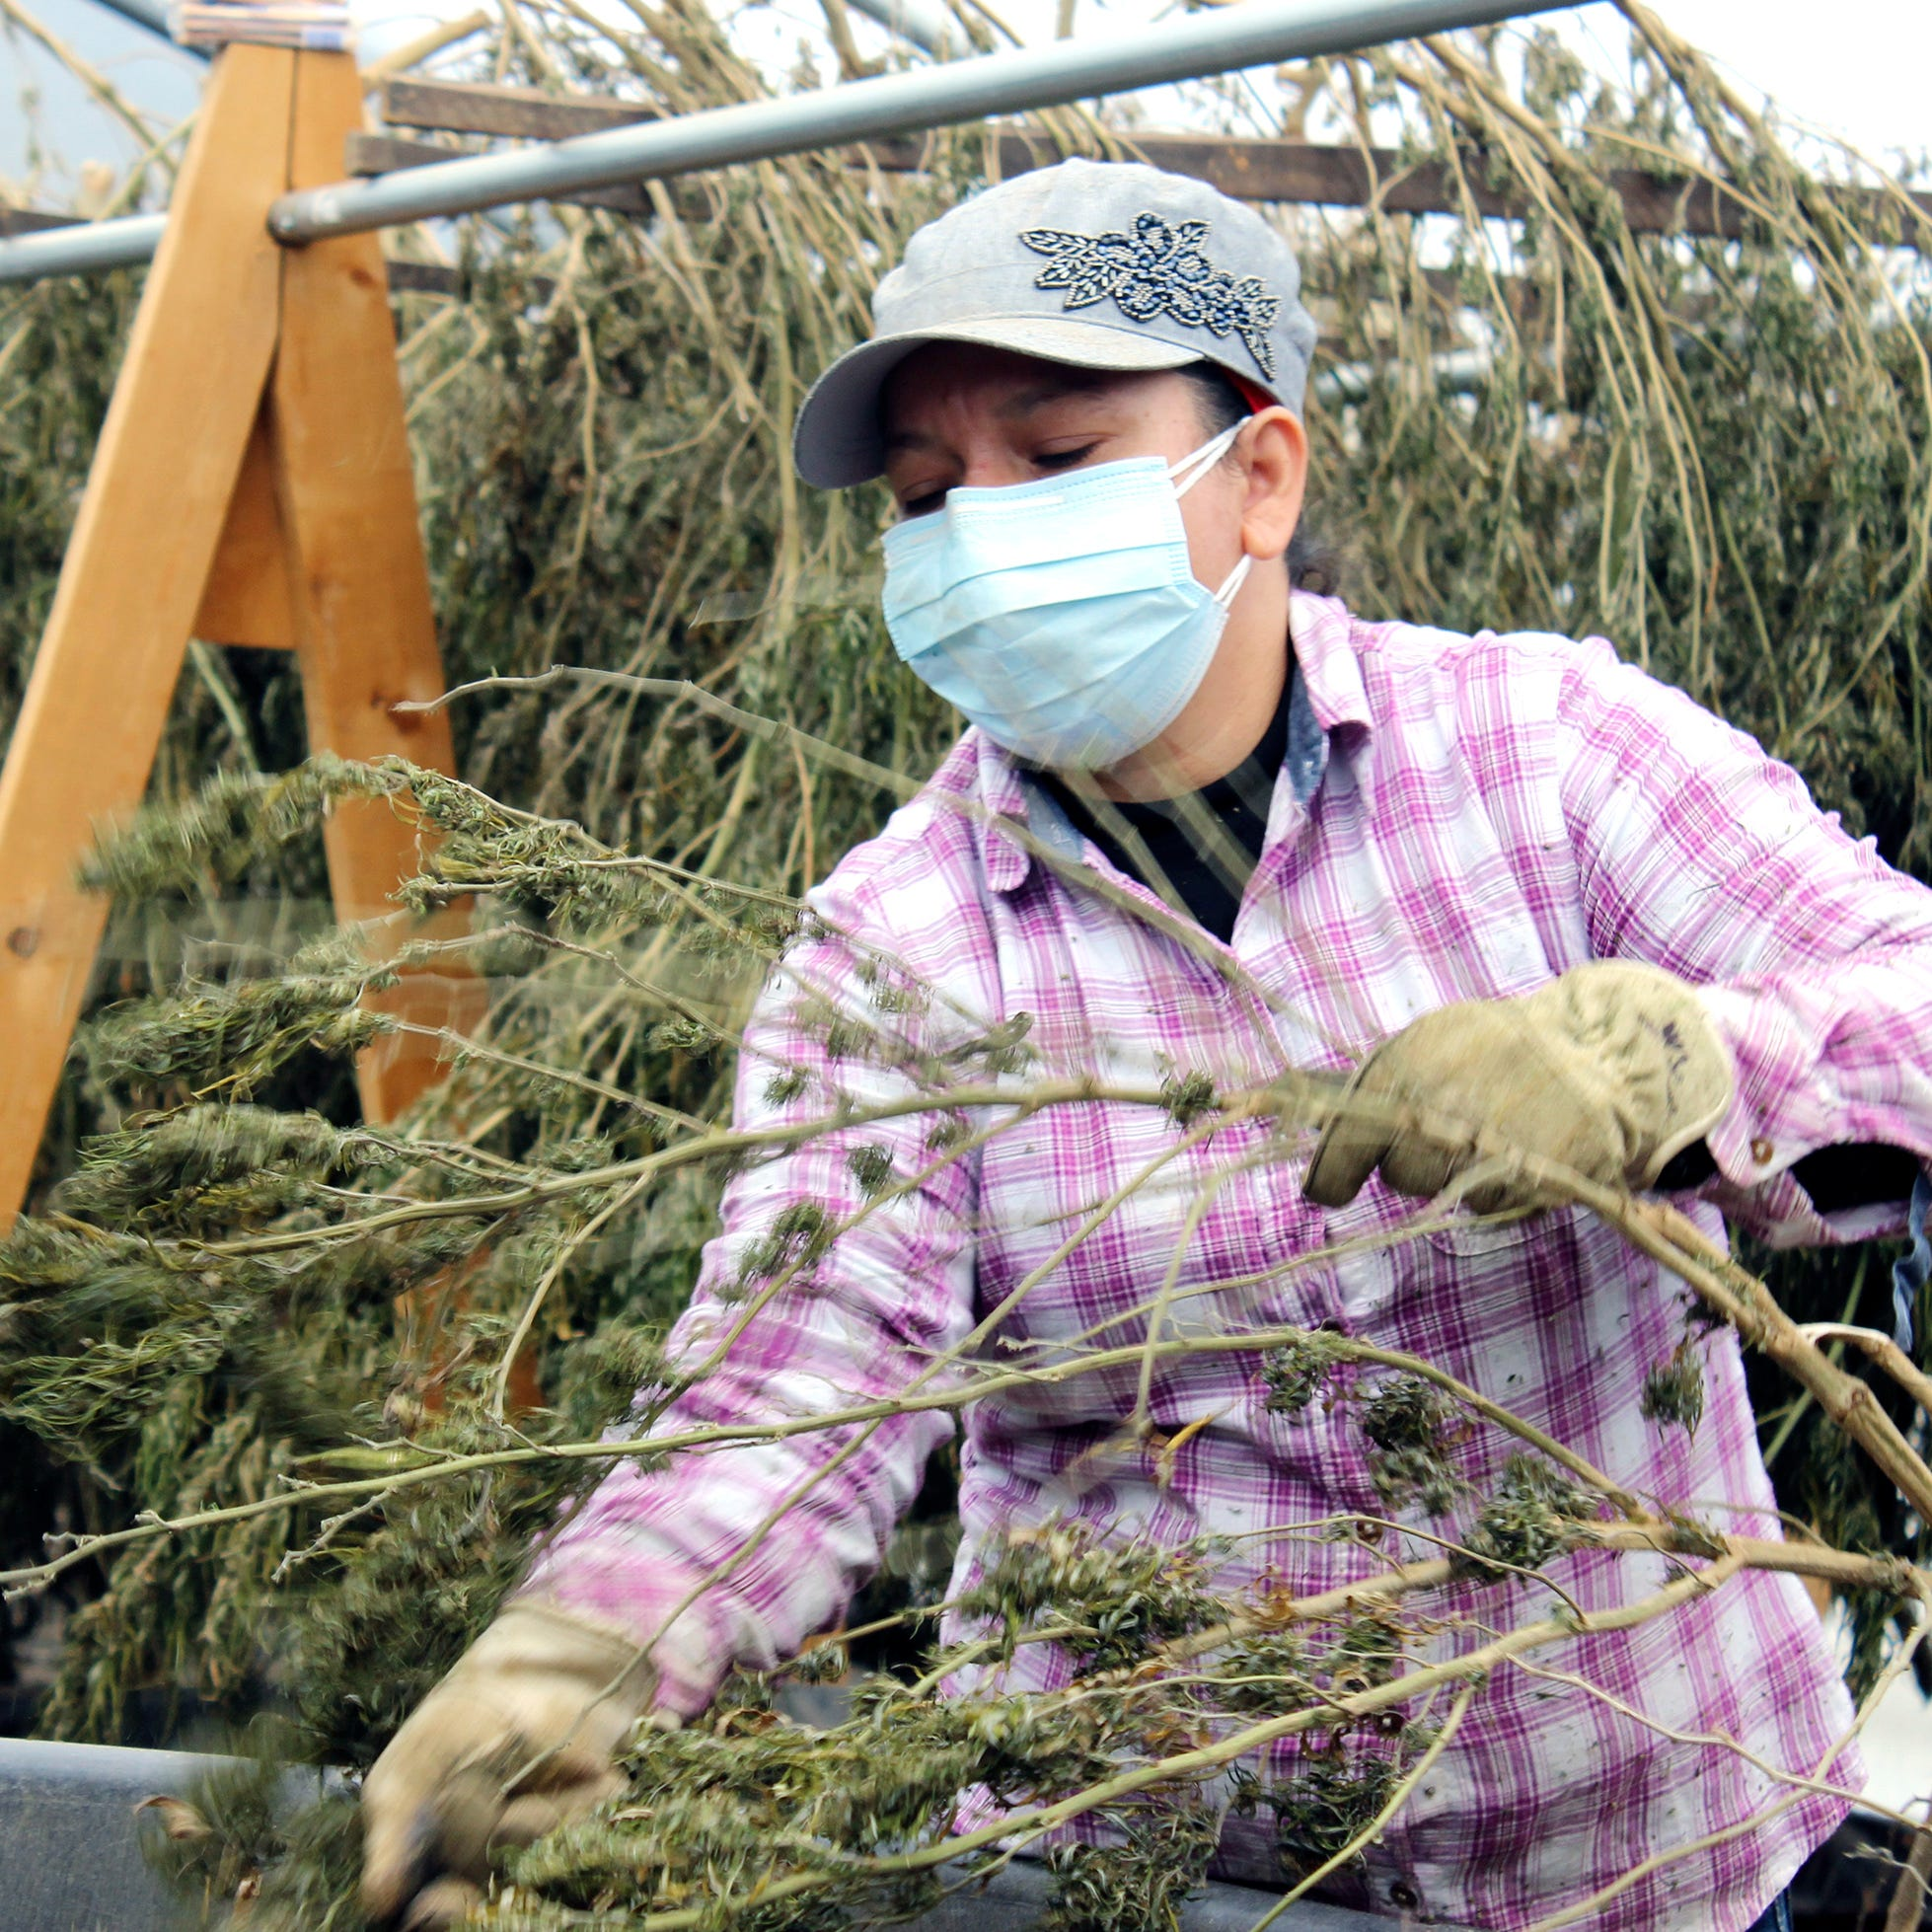 'A new gold rush': Tennessee hemp farming rises 1,100% in one year. Is it growing too fast?